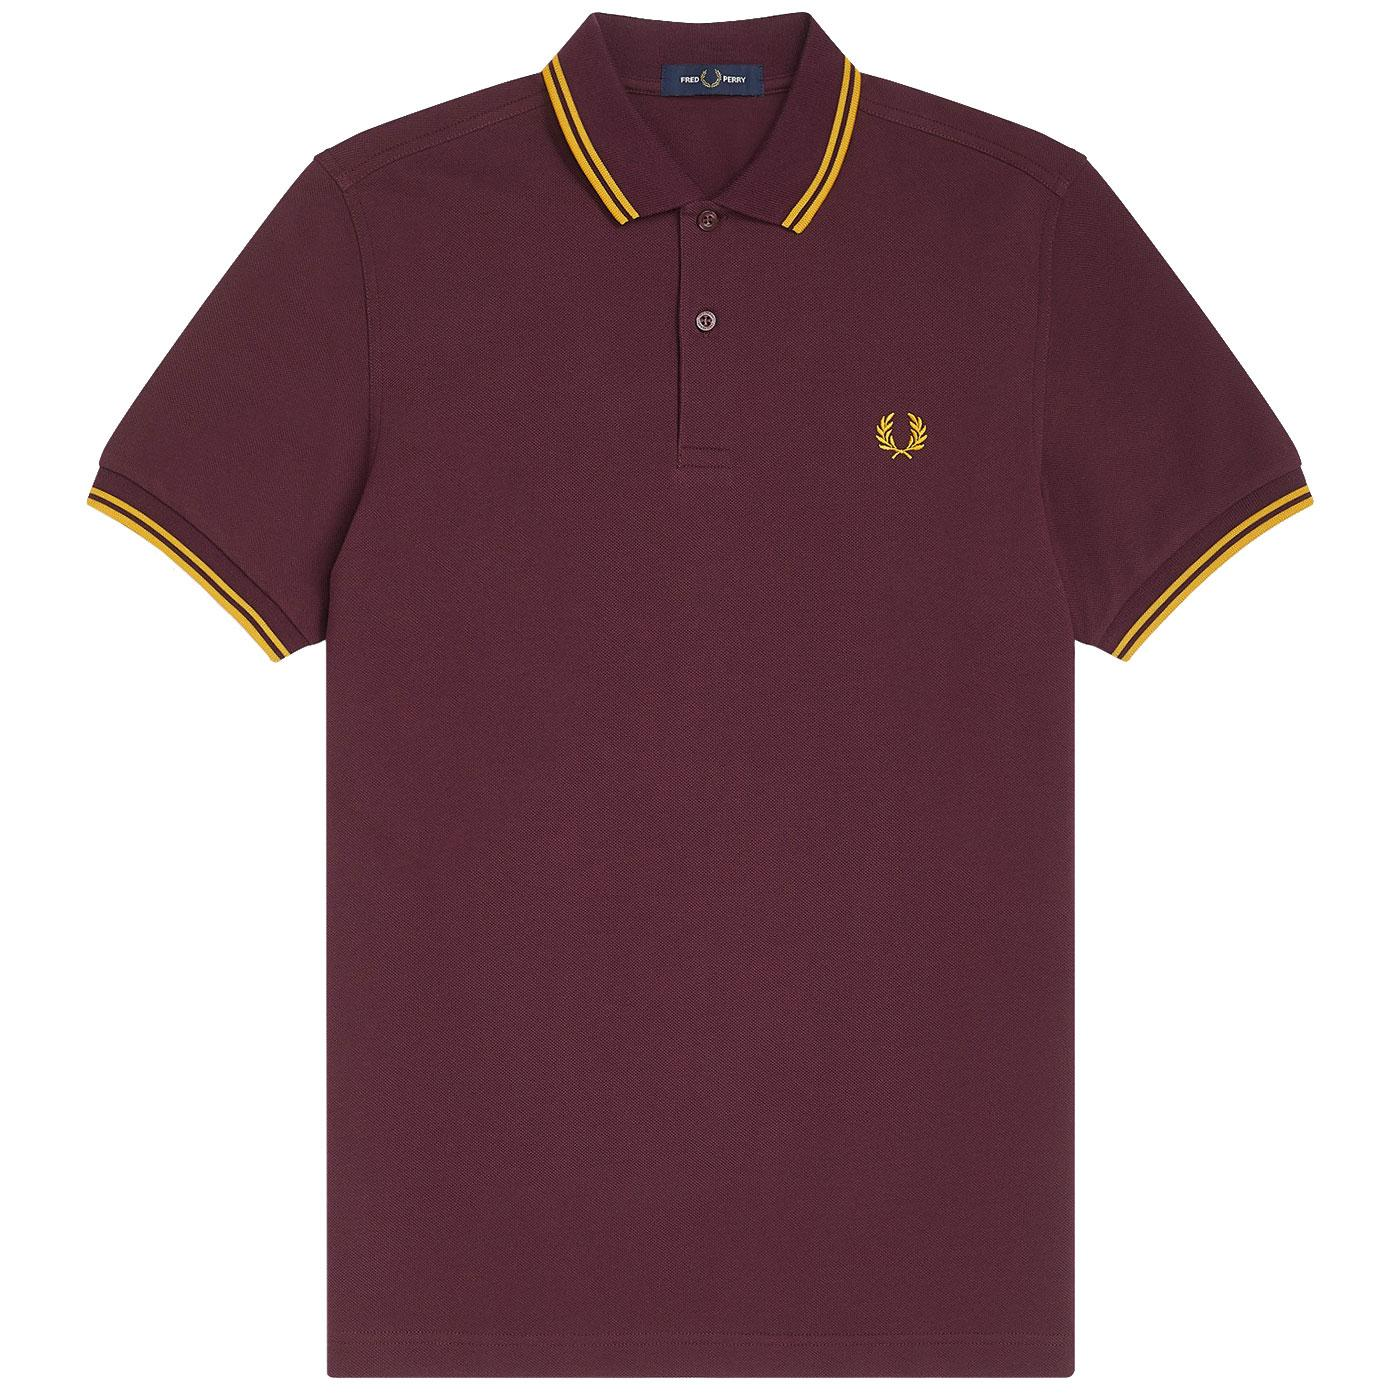 FRED PERRY M3600 Twin Tipped Pique Polo Shirt M/G